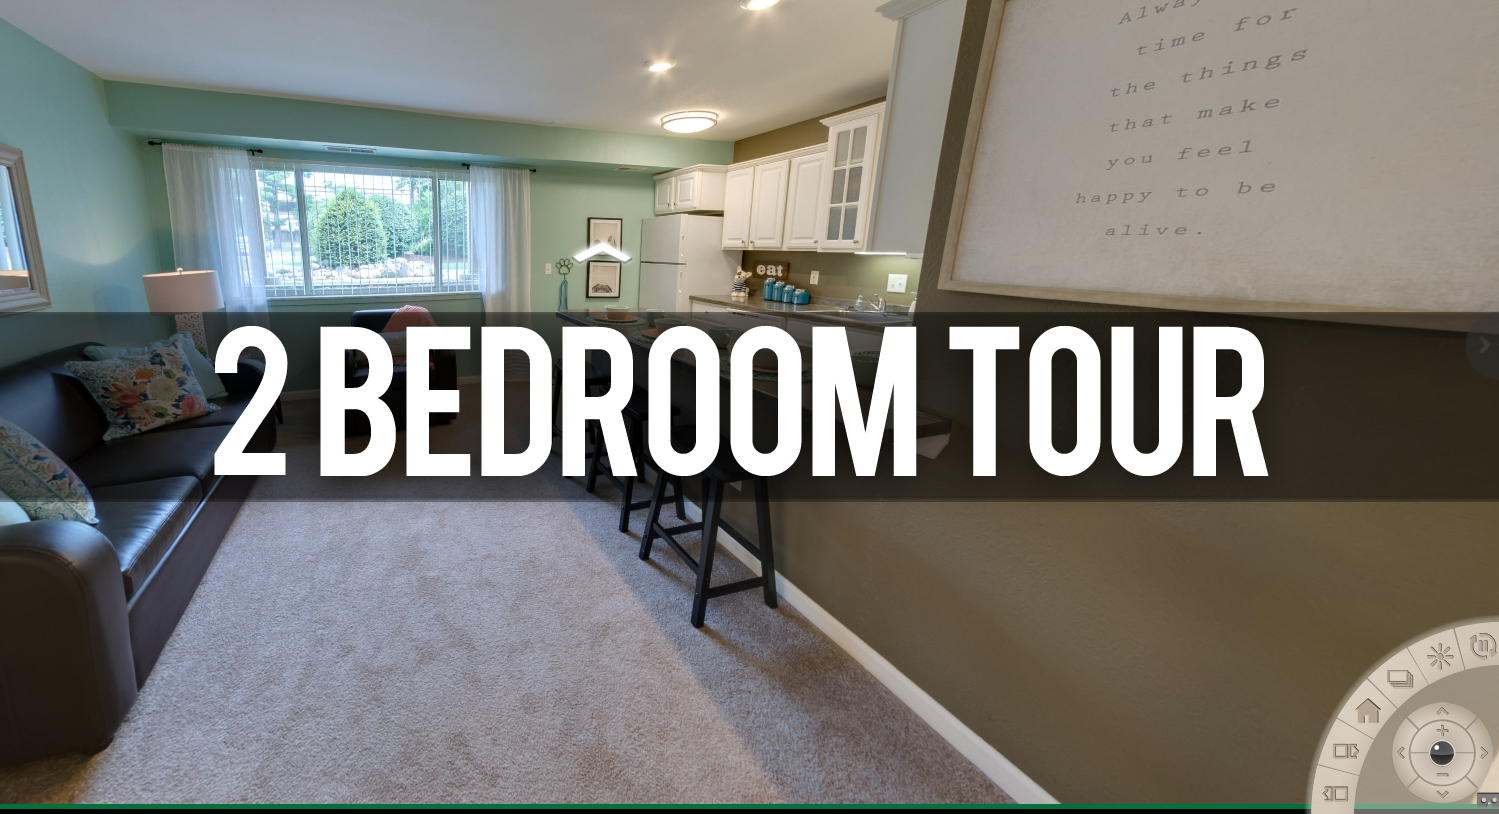 2 Bedroom Tour at Glenwood Apartments Near Michigan State University